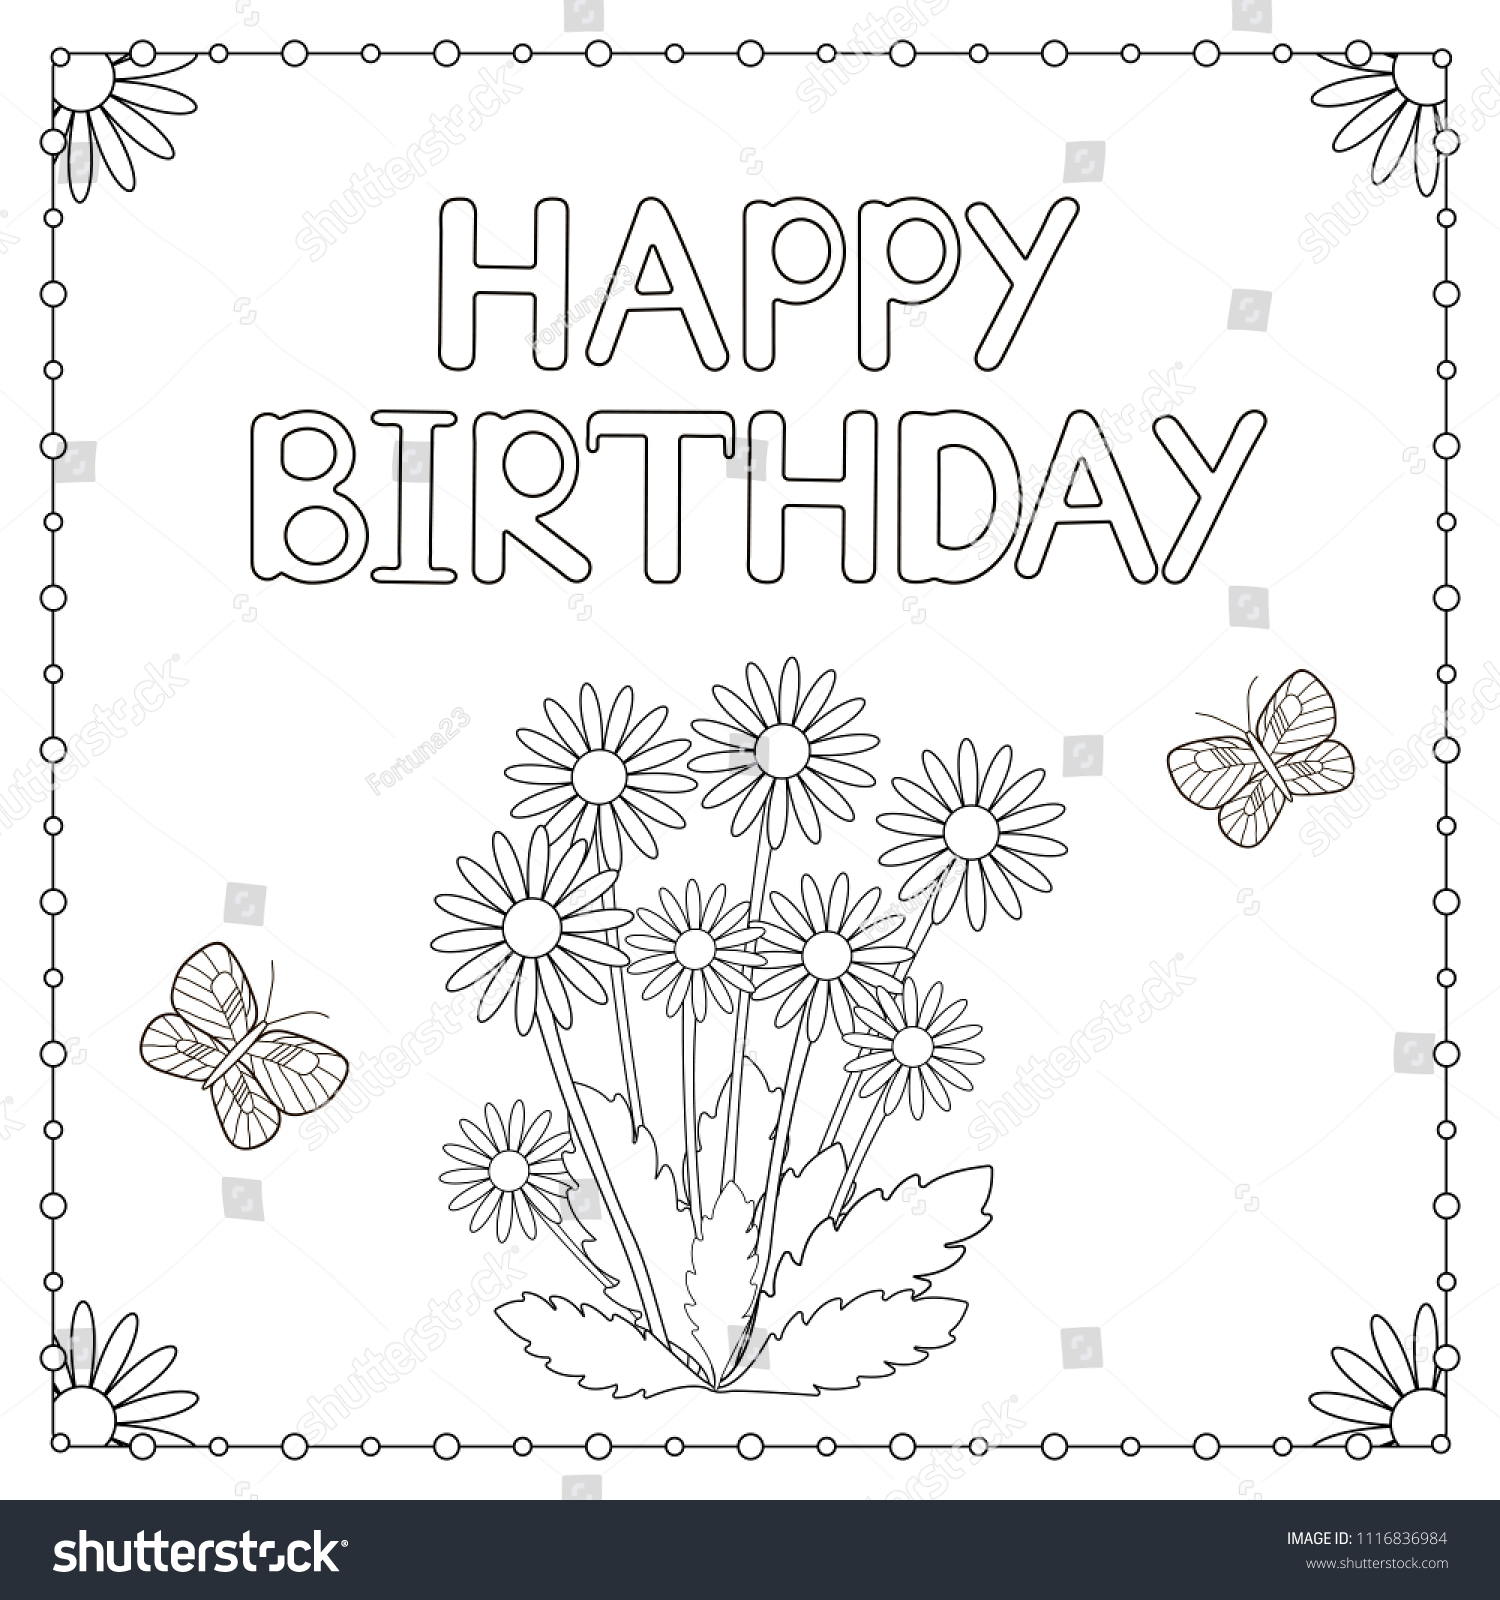 Happy Birthday Card Flowers Butterflies Coloring Stock Vector ...